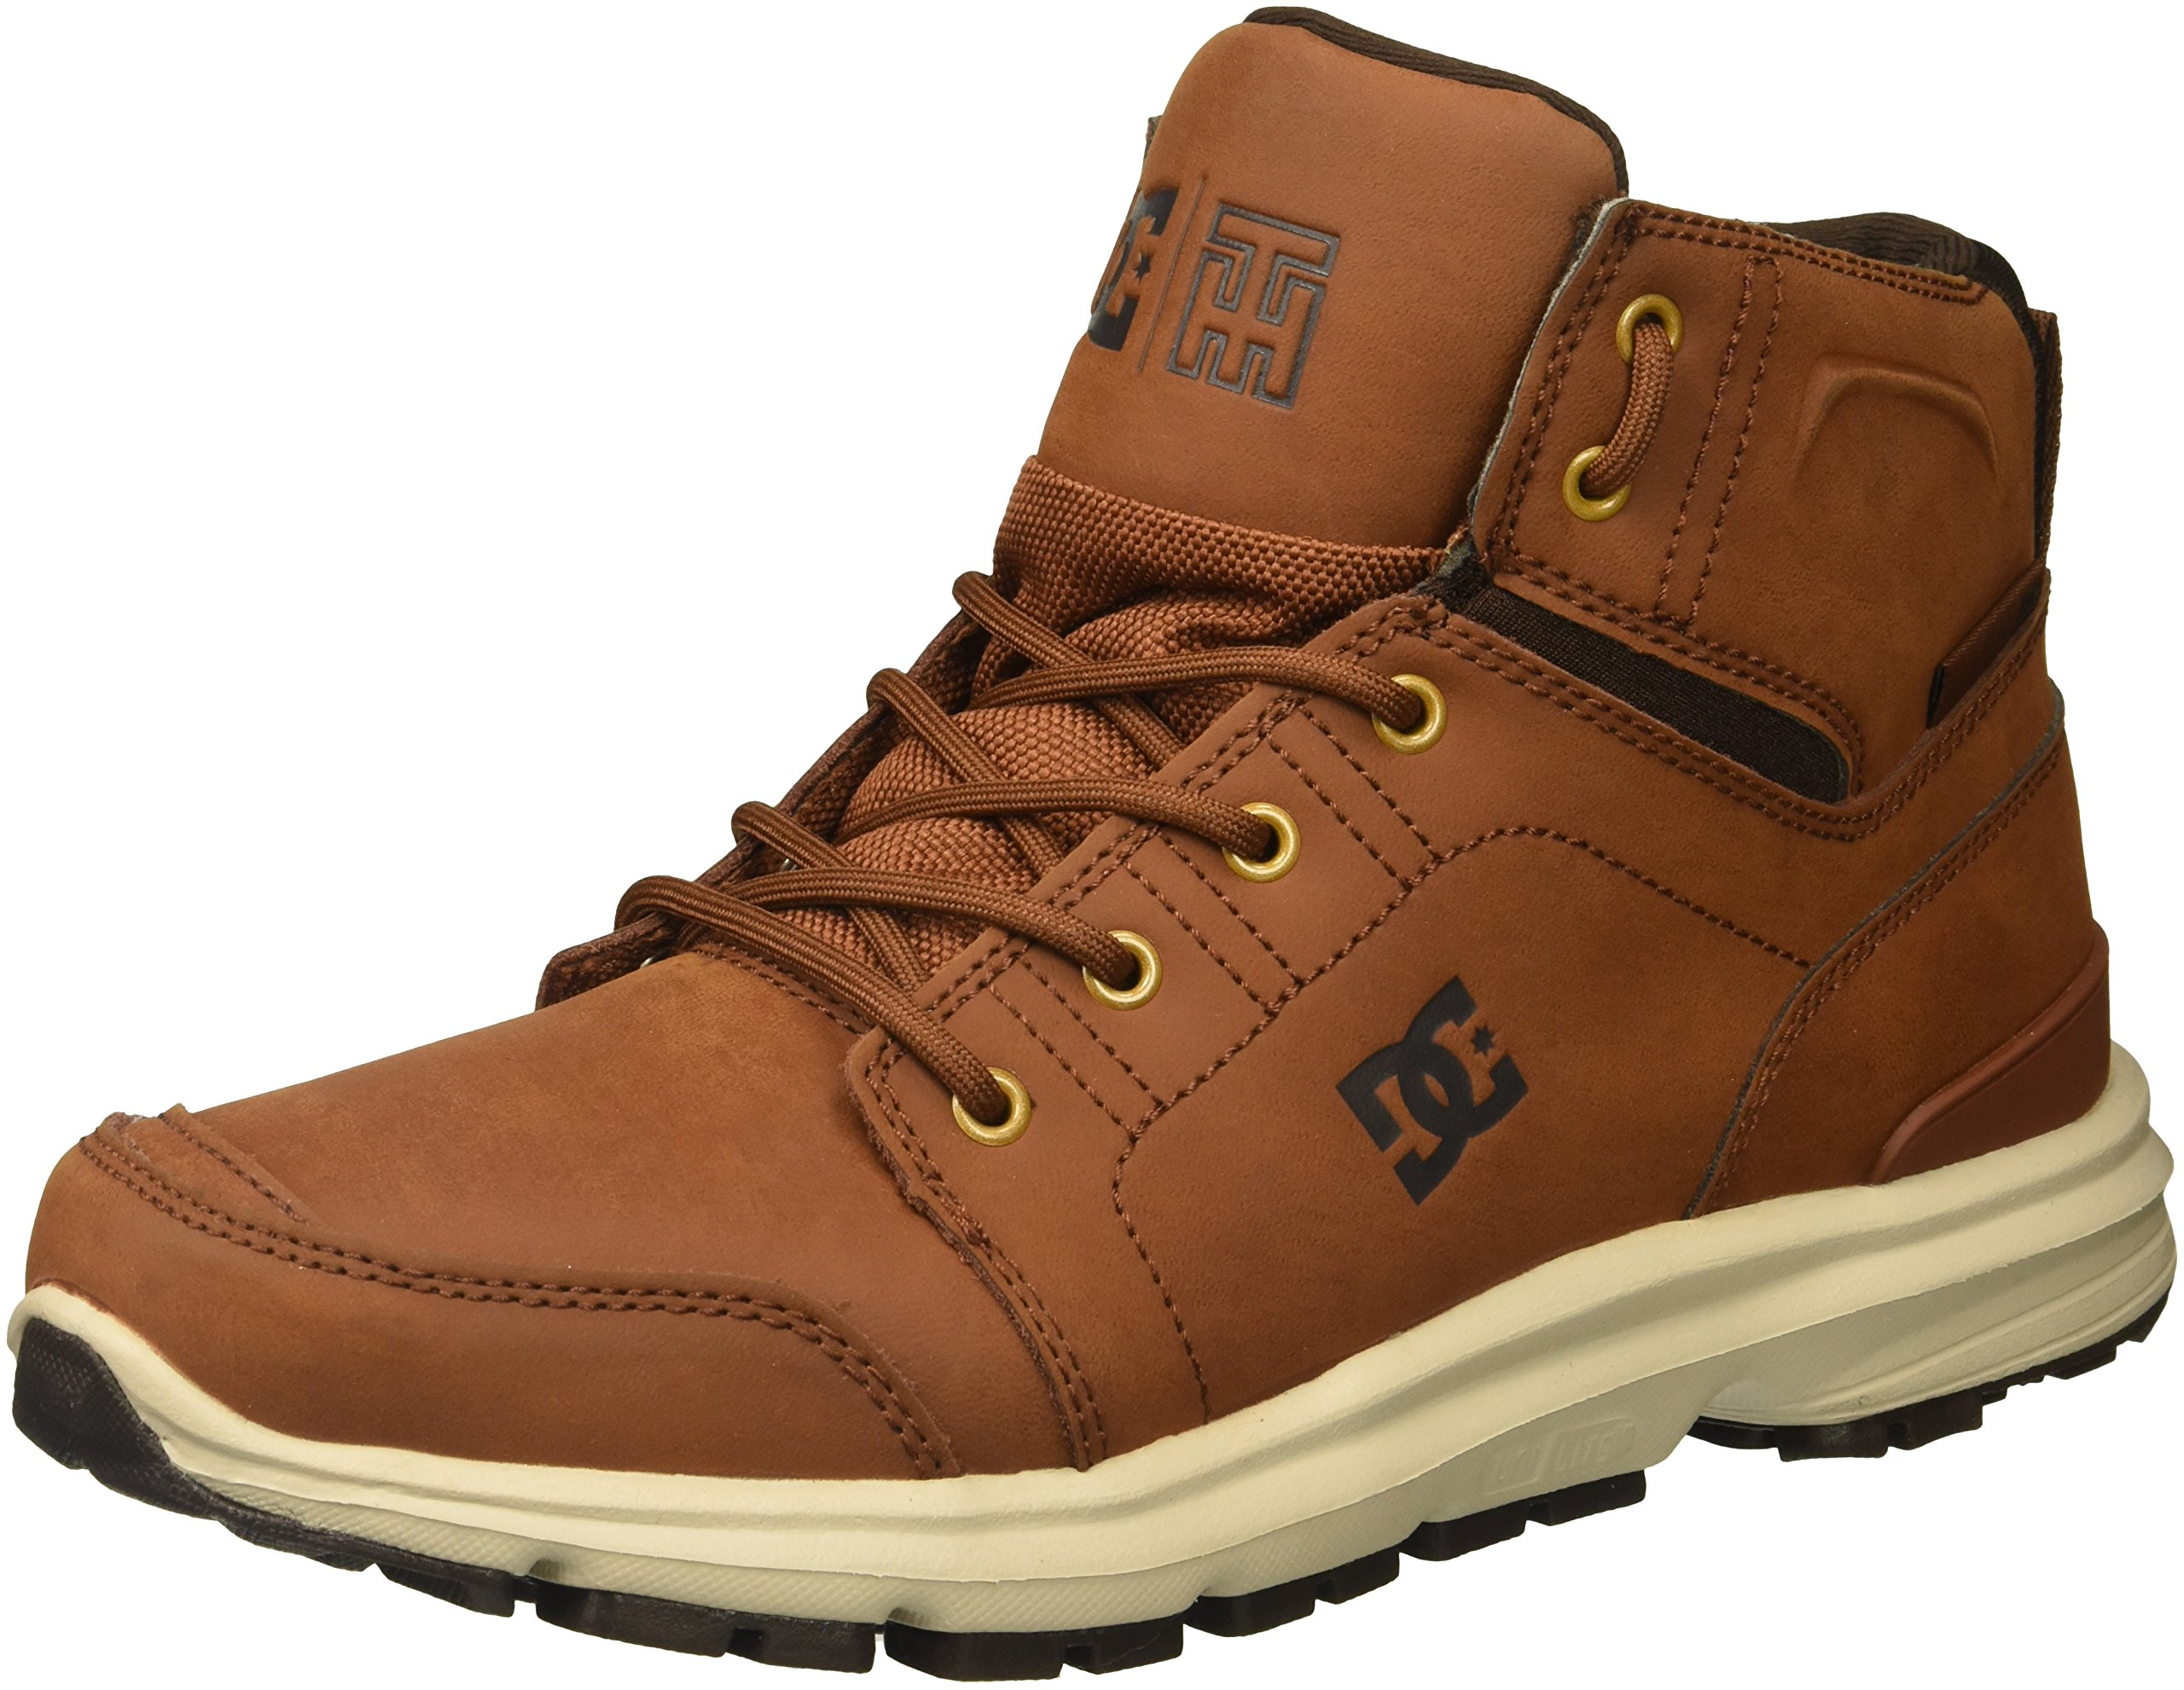 DC Men's Torstein, Brown/Dark Chocolate, 6.5 D D US